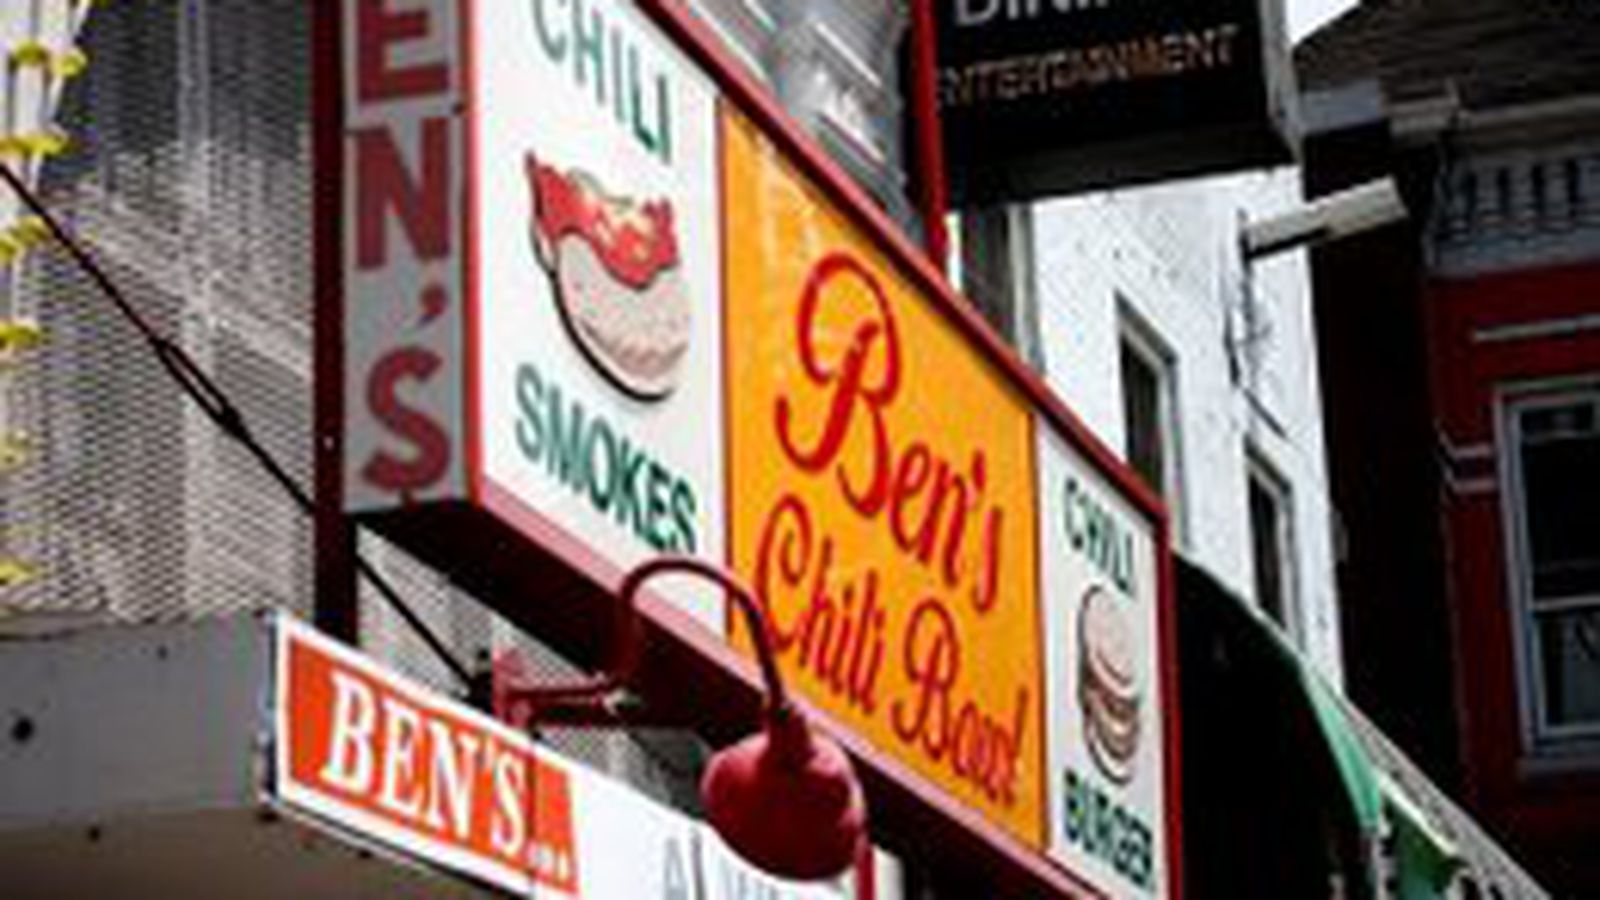 Ben's Chili Bowl Nominated for Manliest Restaurant